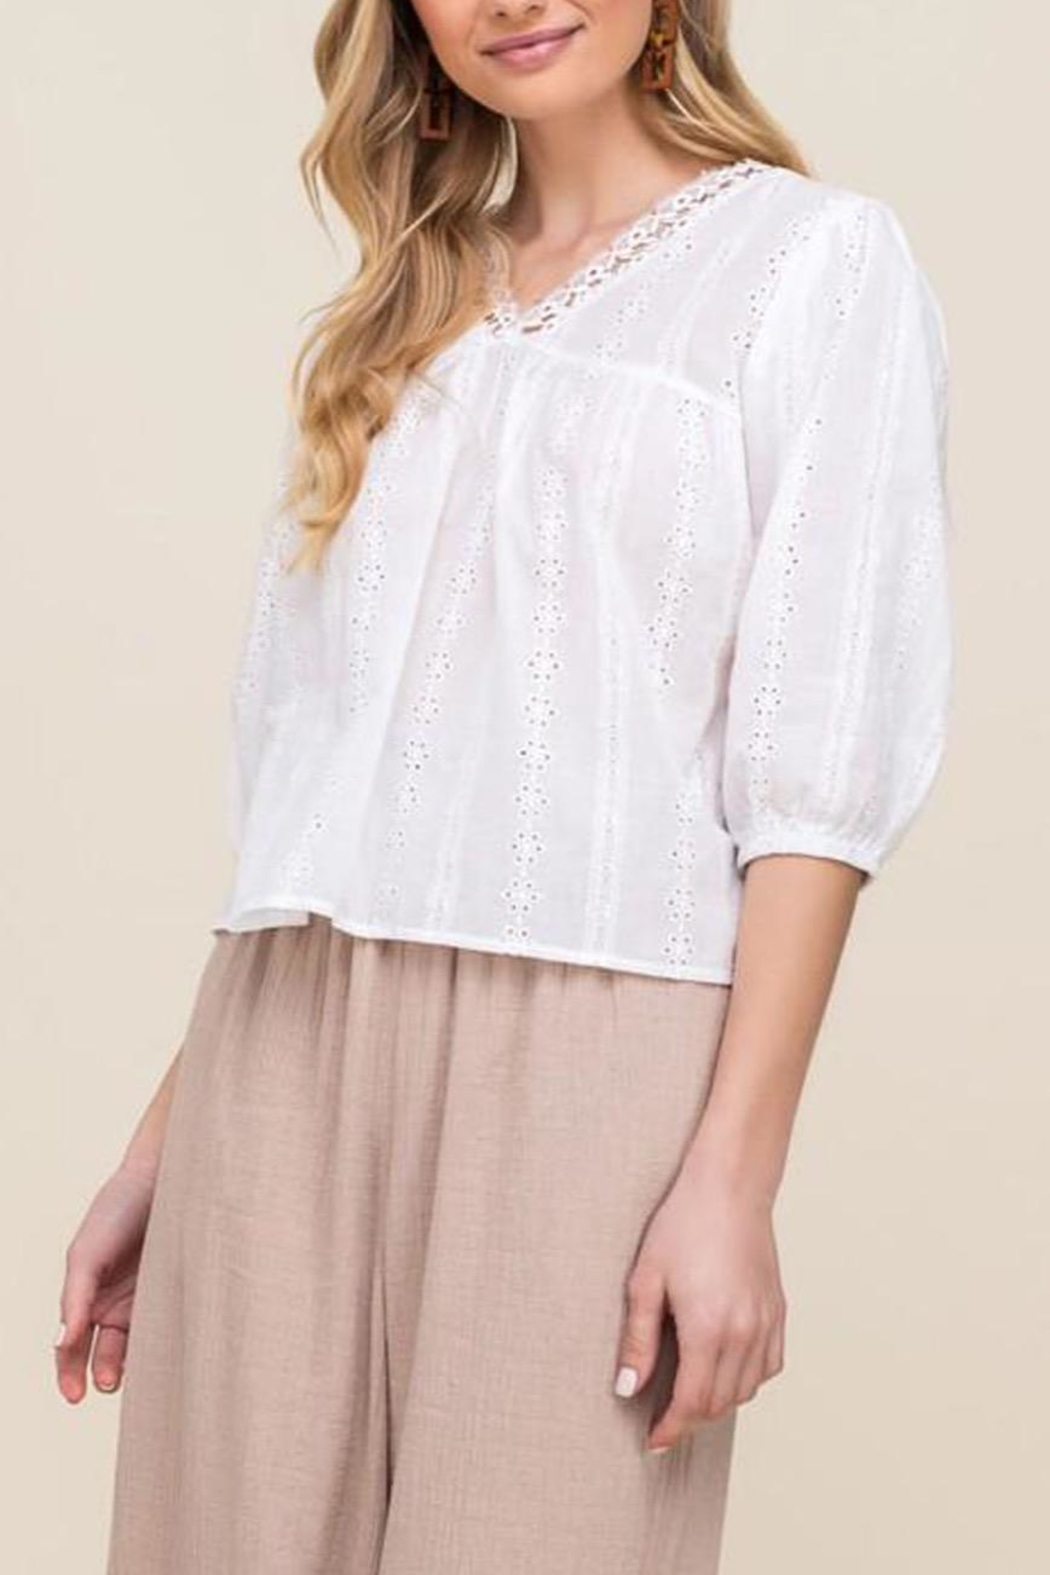 All In Favor Eyelet Balloon-Sleeve Top - Main Image